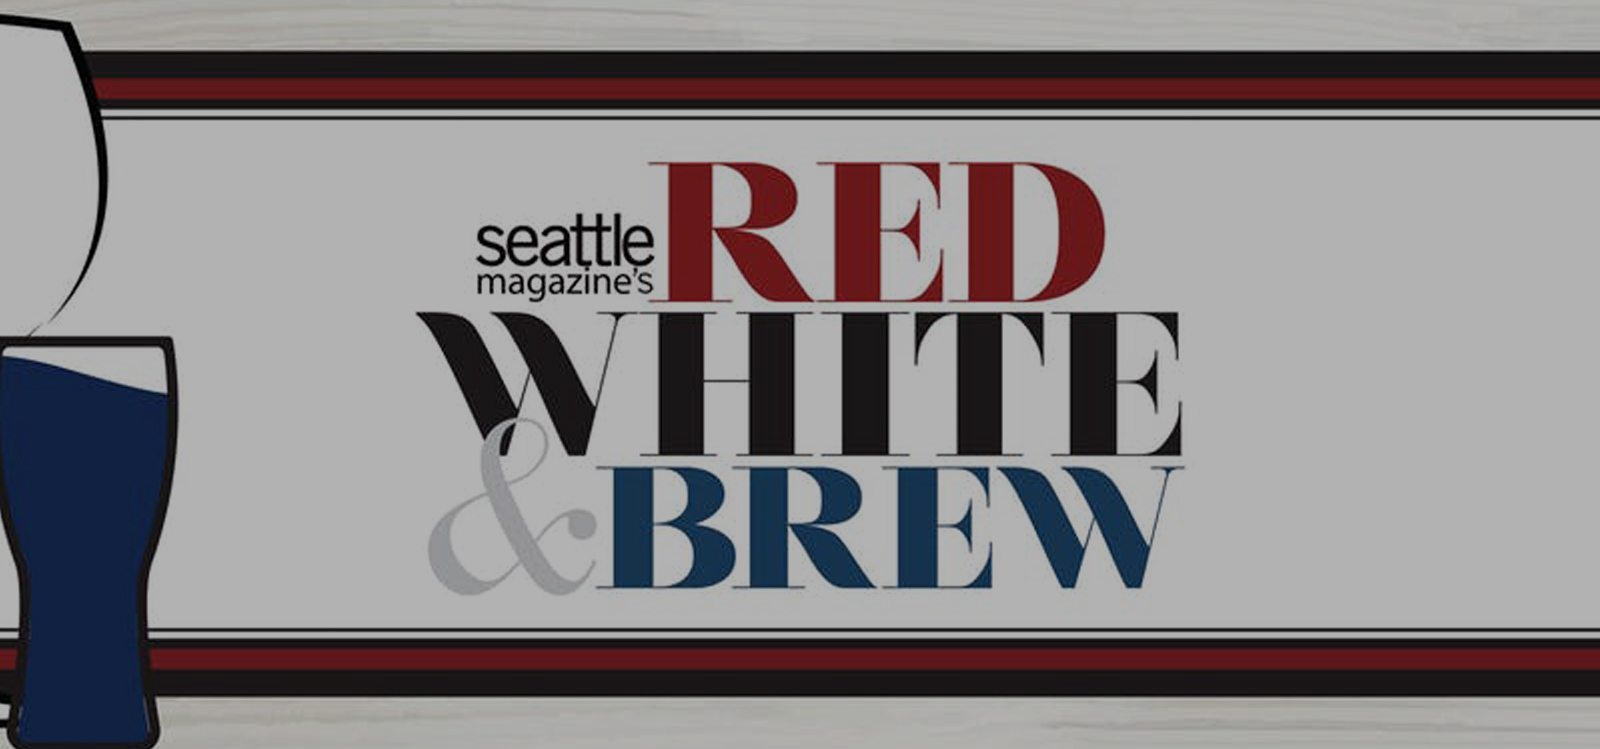 Seattle Red White Brew  Overlay